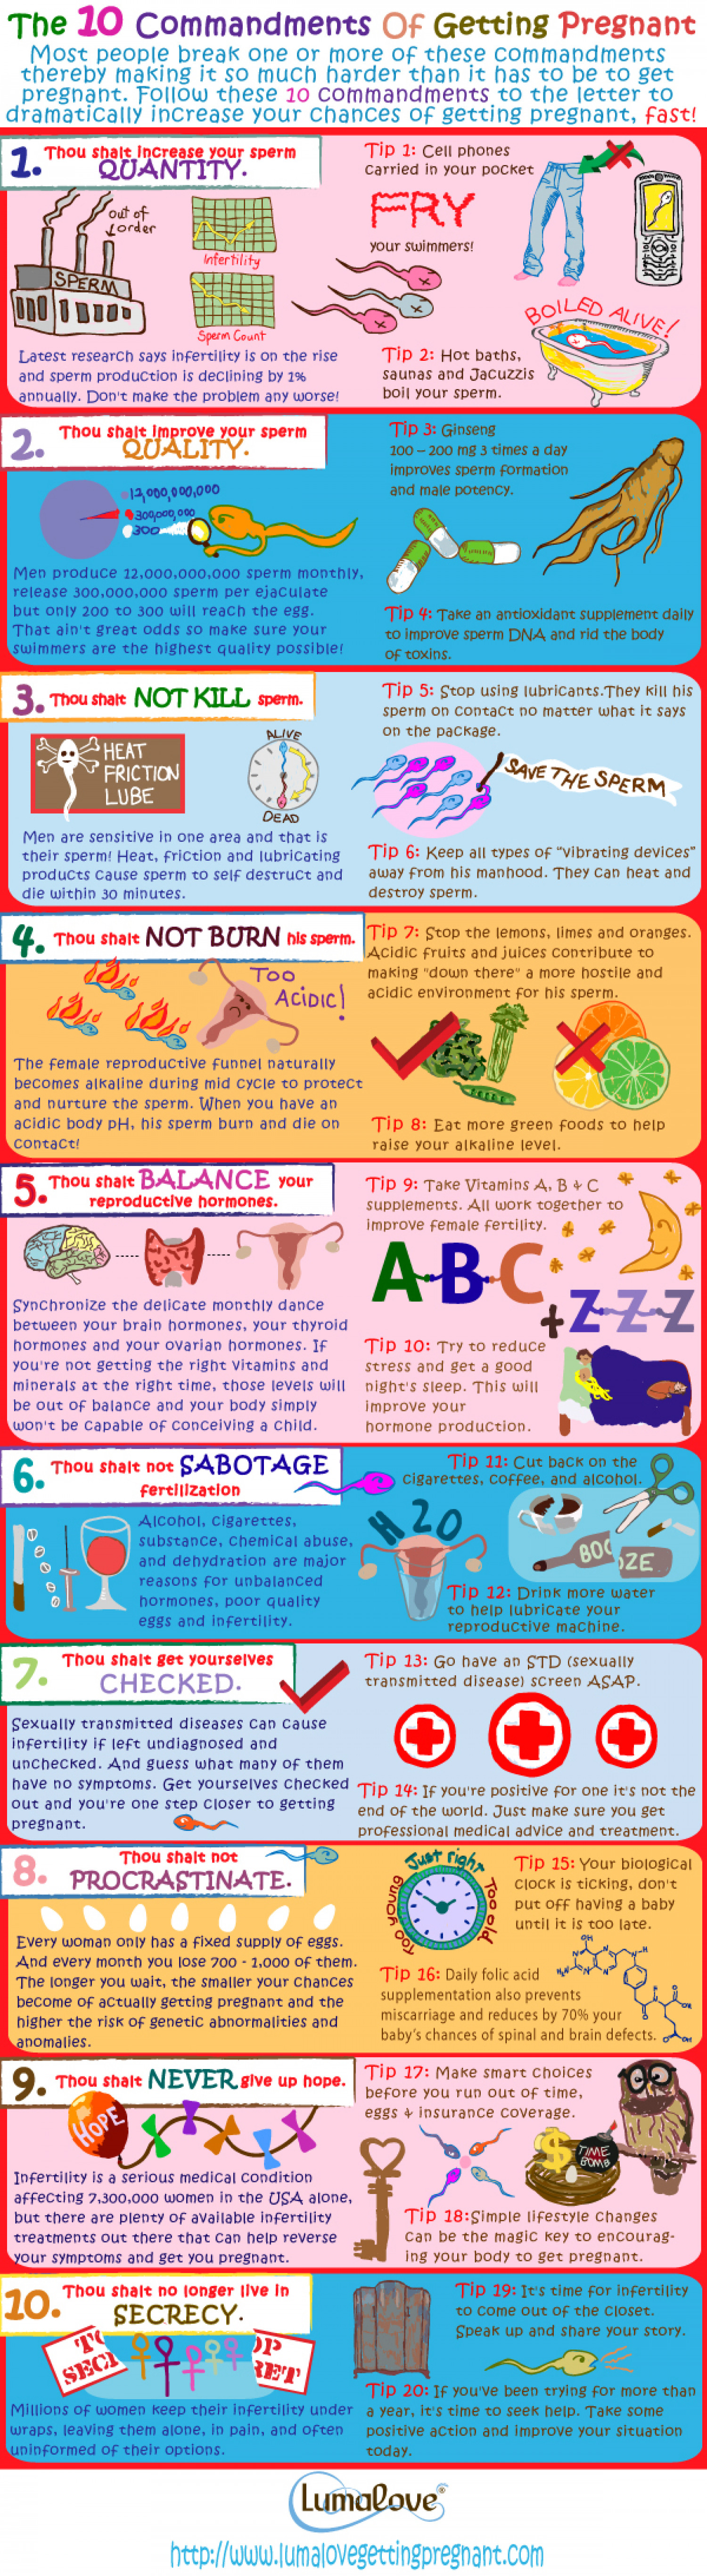 The Ten Commandments of Getting Pregnant Infographic